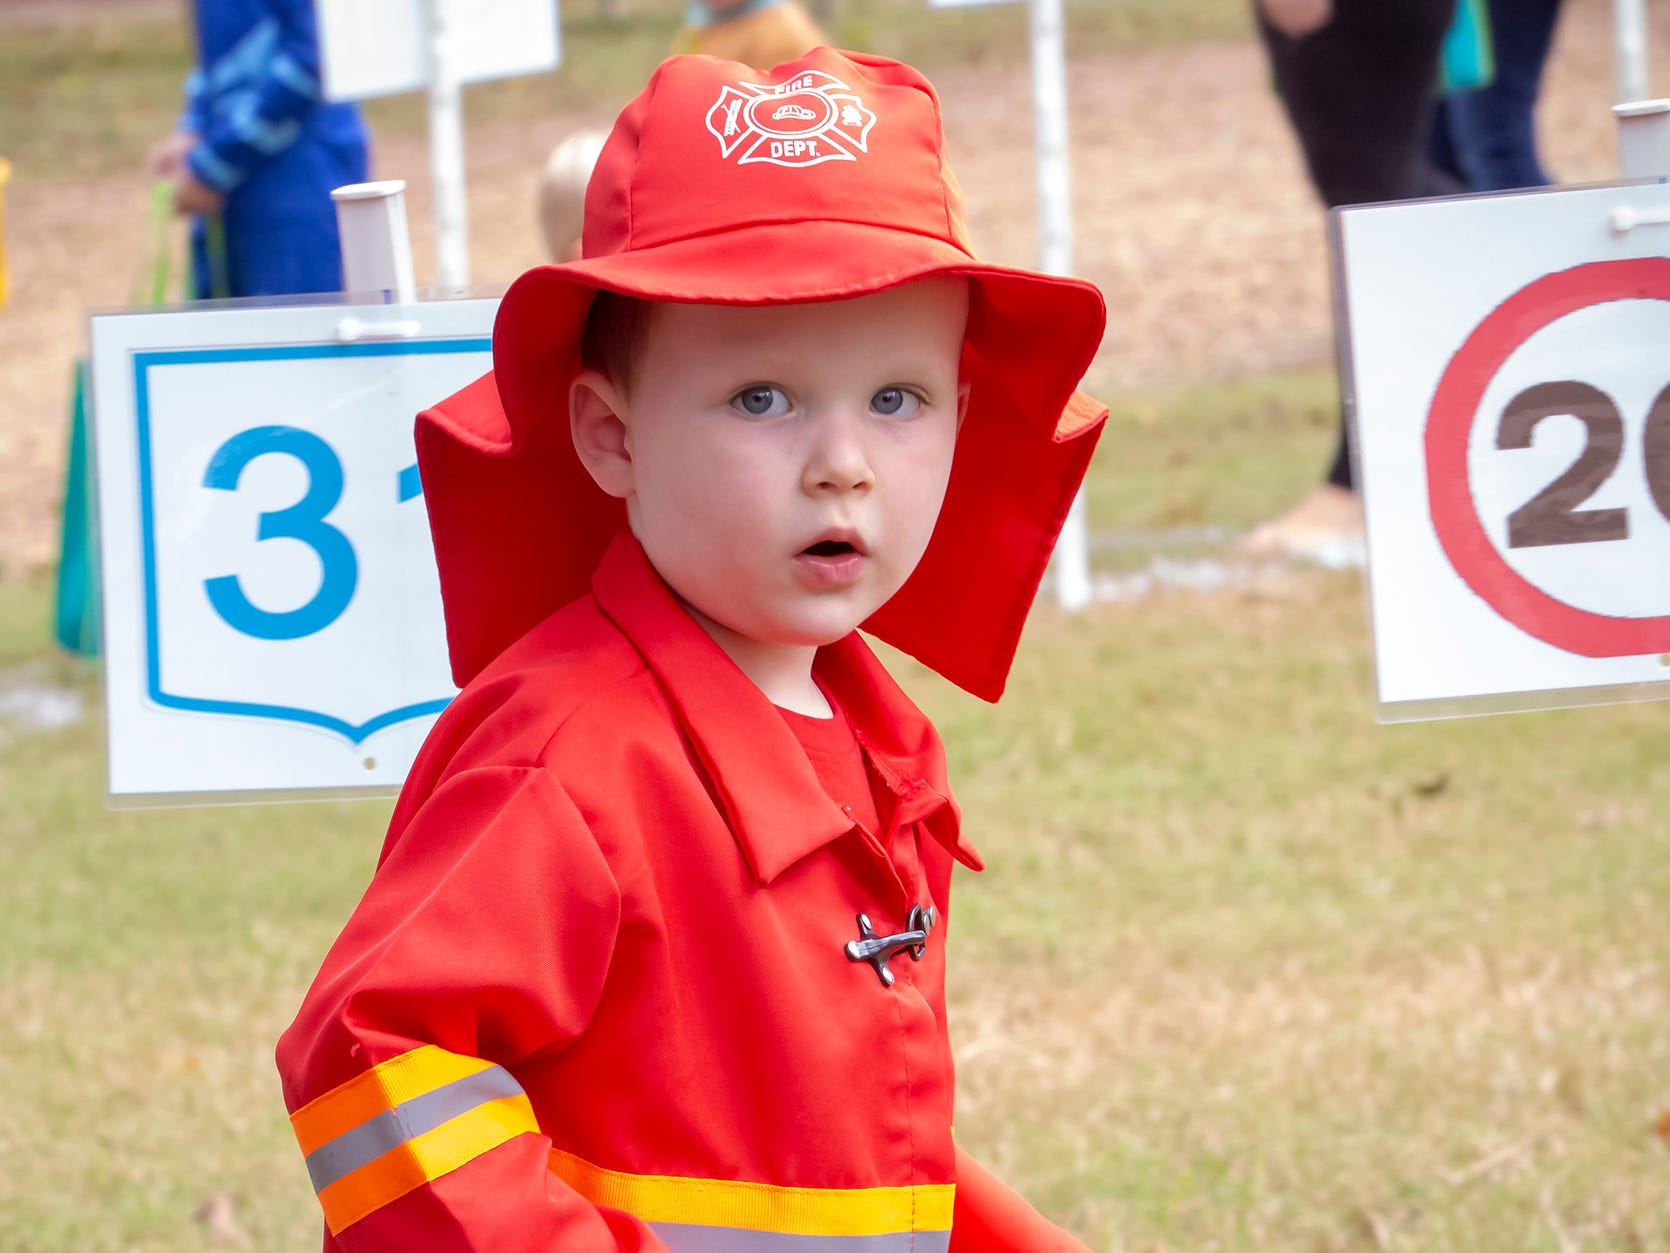 Bennett Schuster, dressed as a Firefighter, takes a step in the Book Walk, aka the Cake Walk, at the Fall Celebration and Hayride at Cannonsburgh Village.